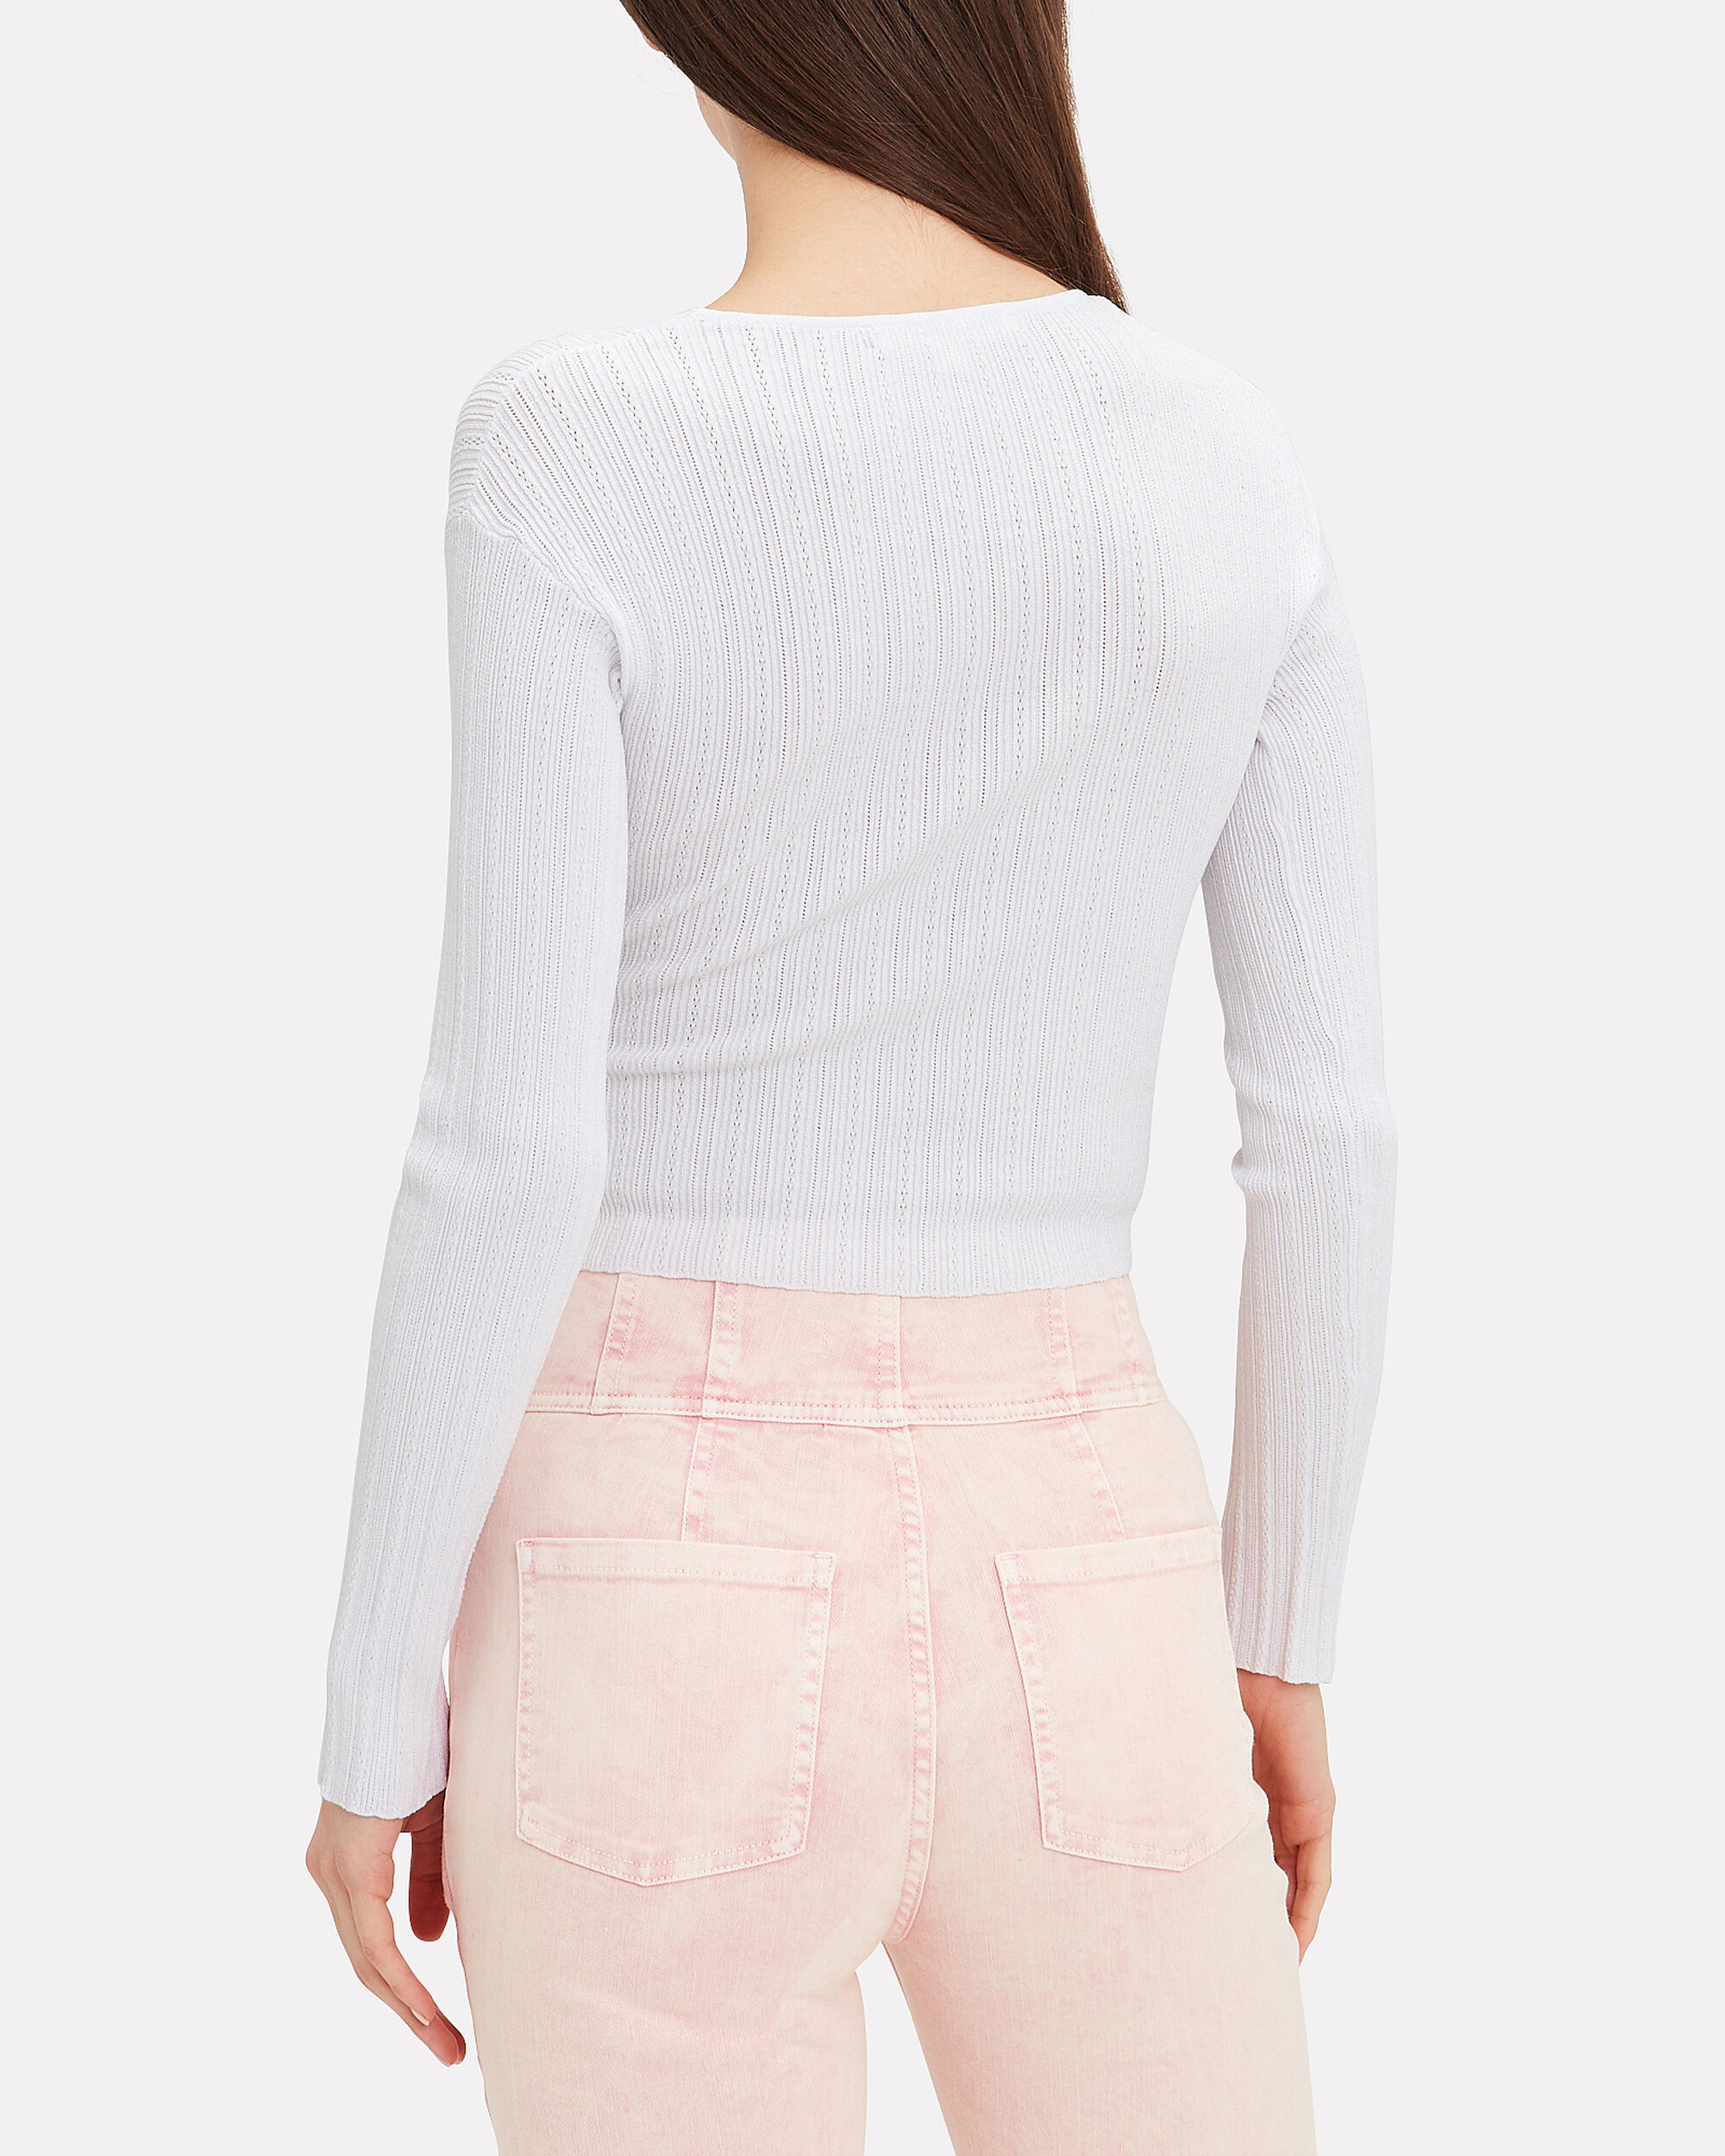 Linked Rib Cross-Front Top, WHITE, hi-res